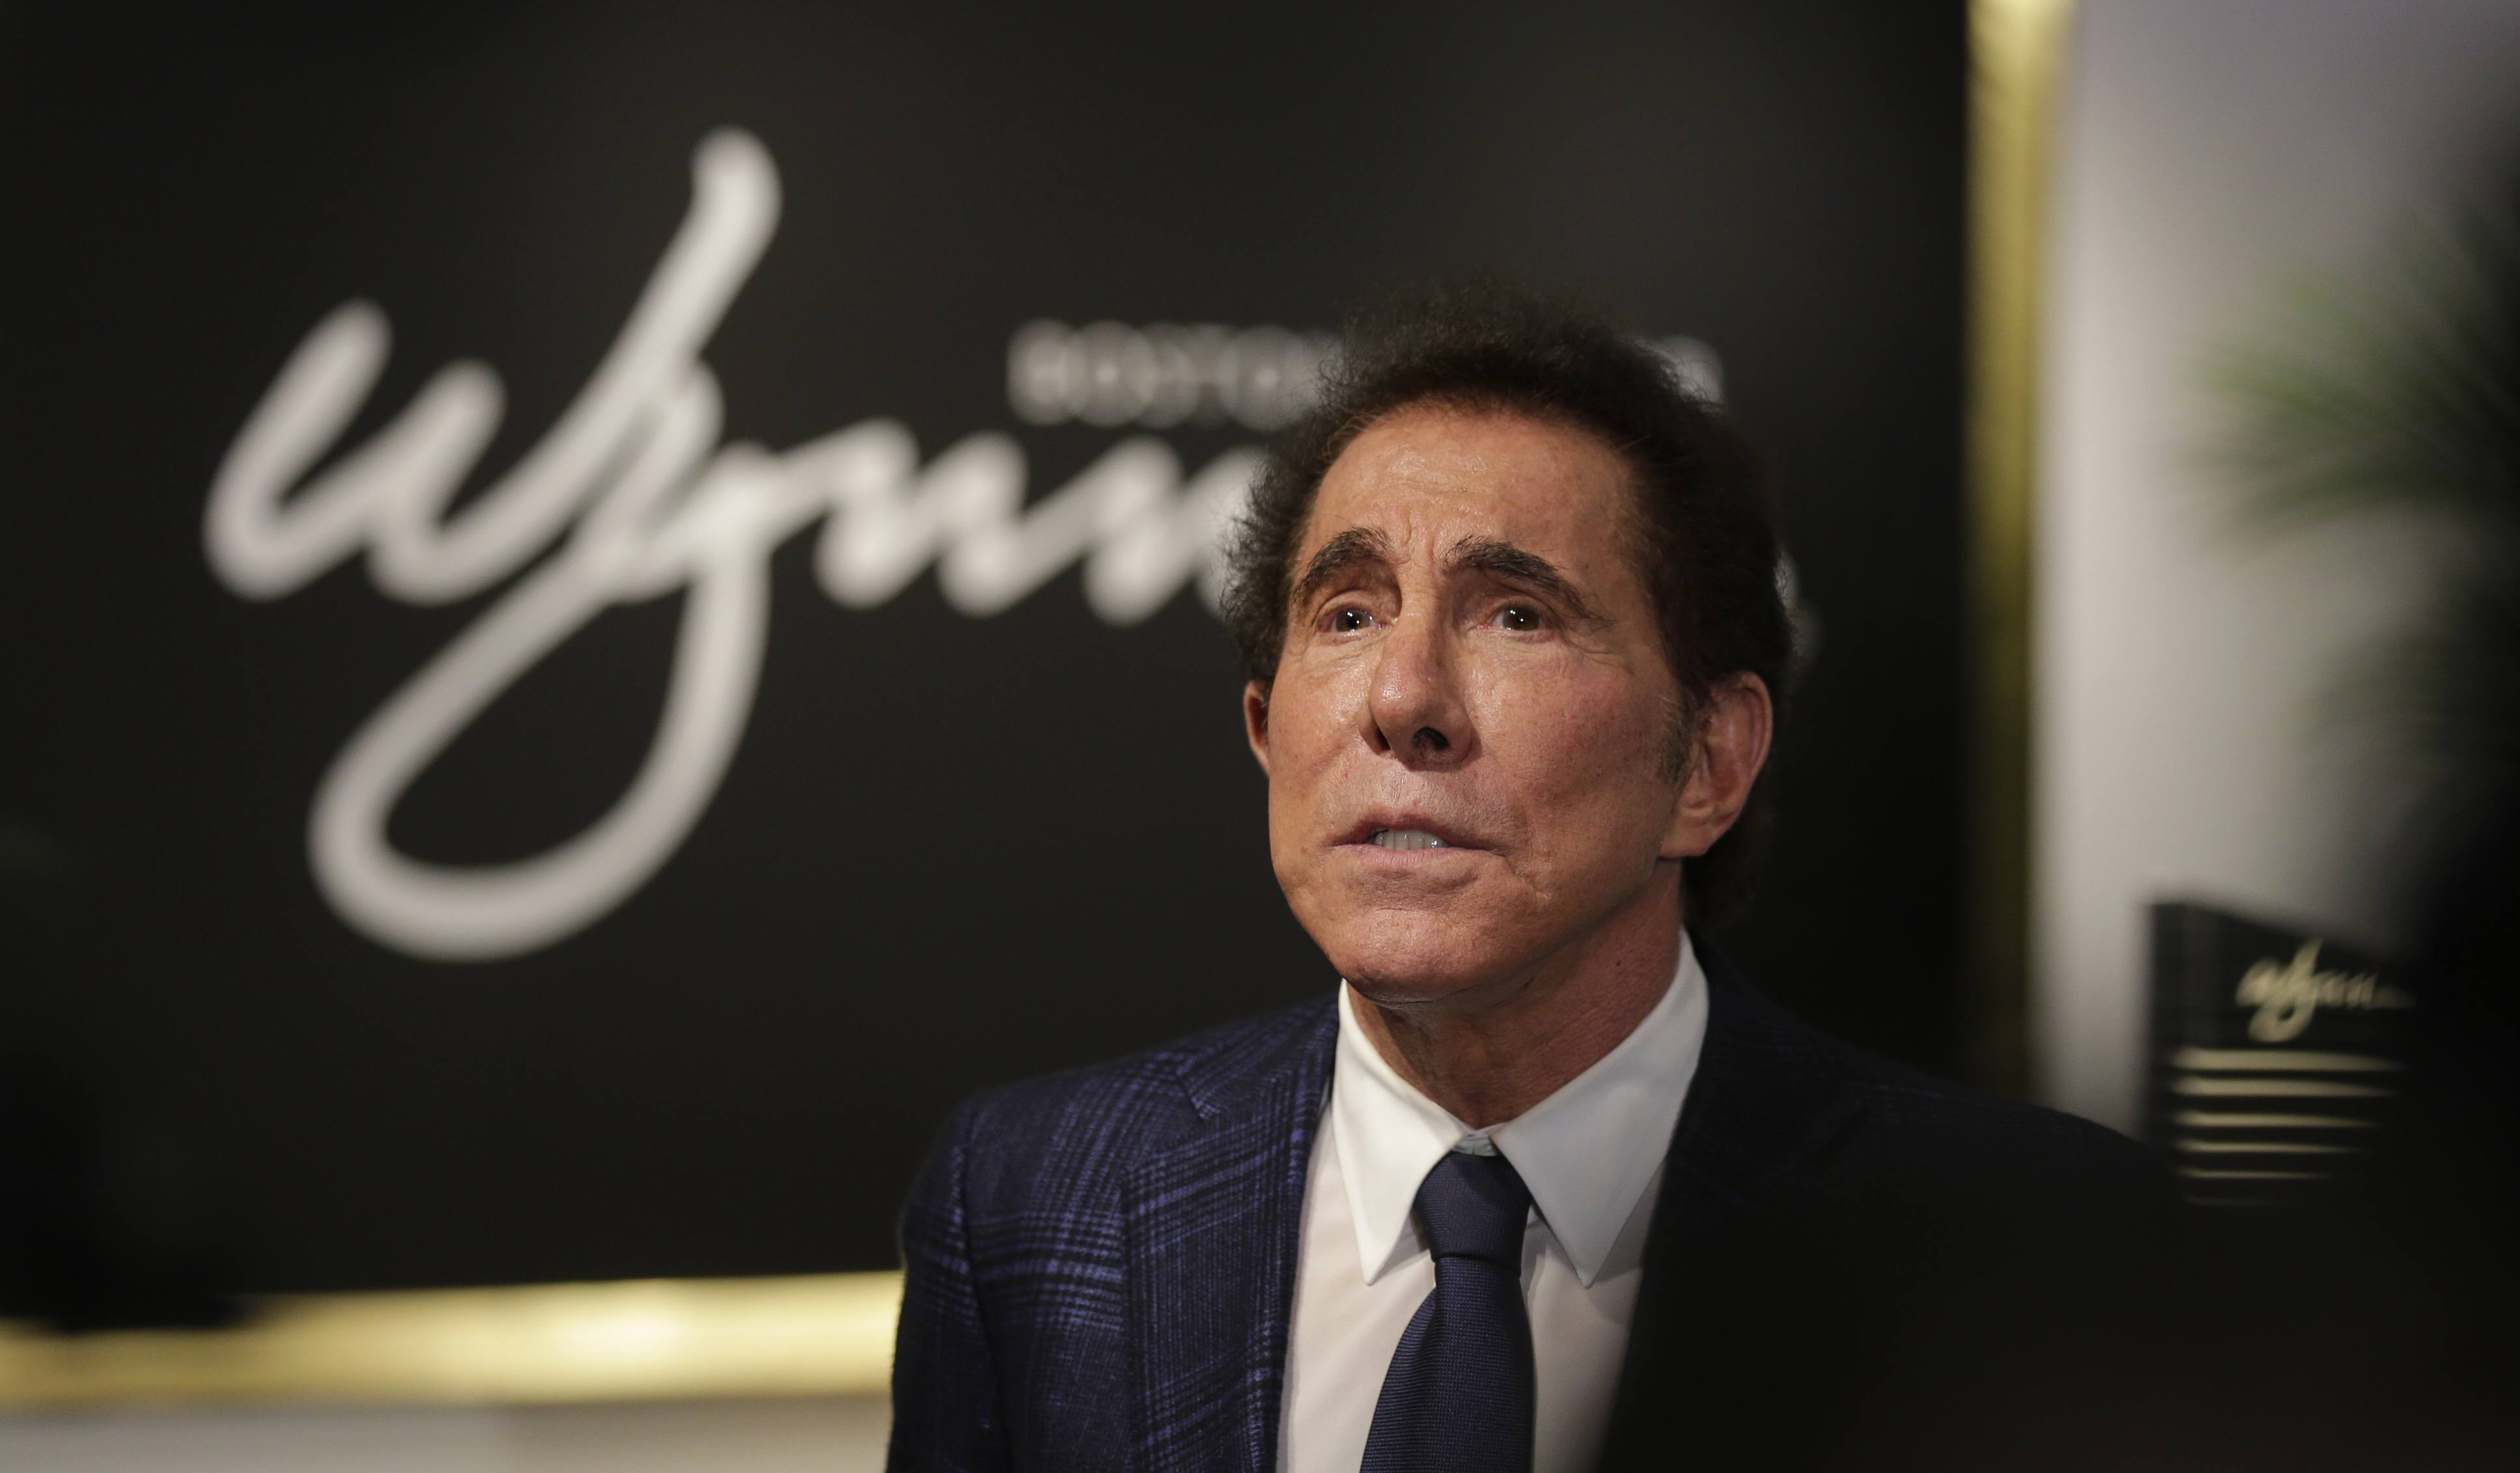 Steve Wynn lawsuit